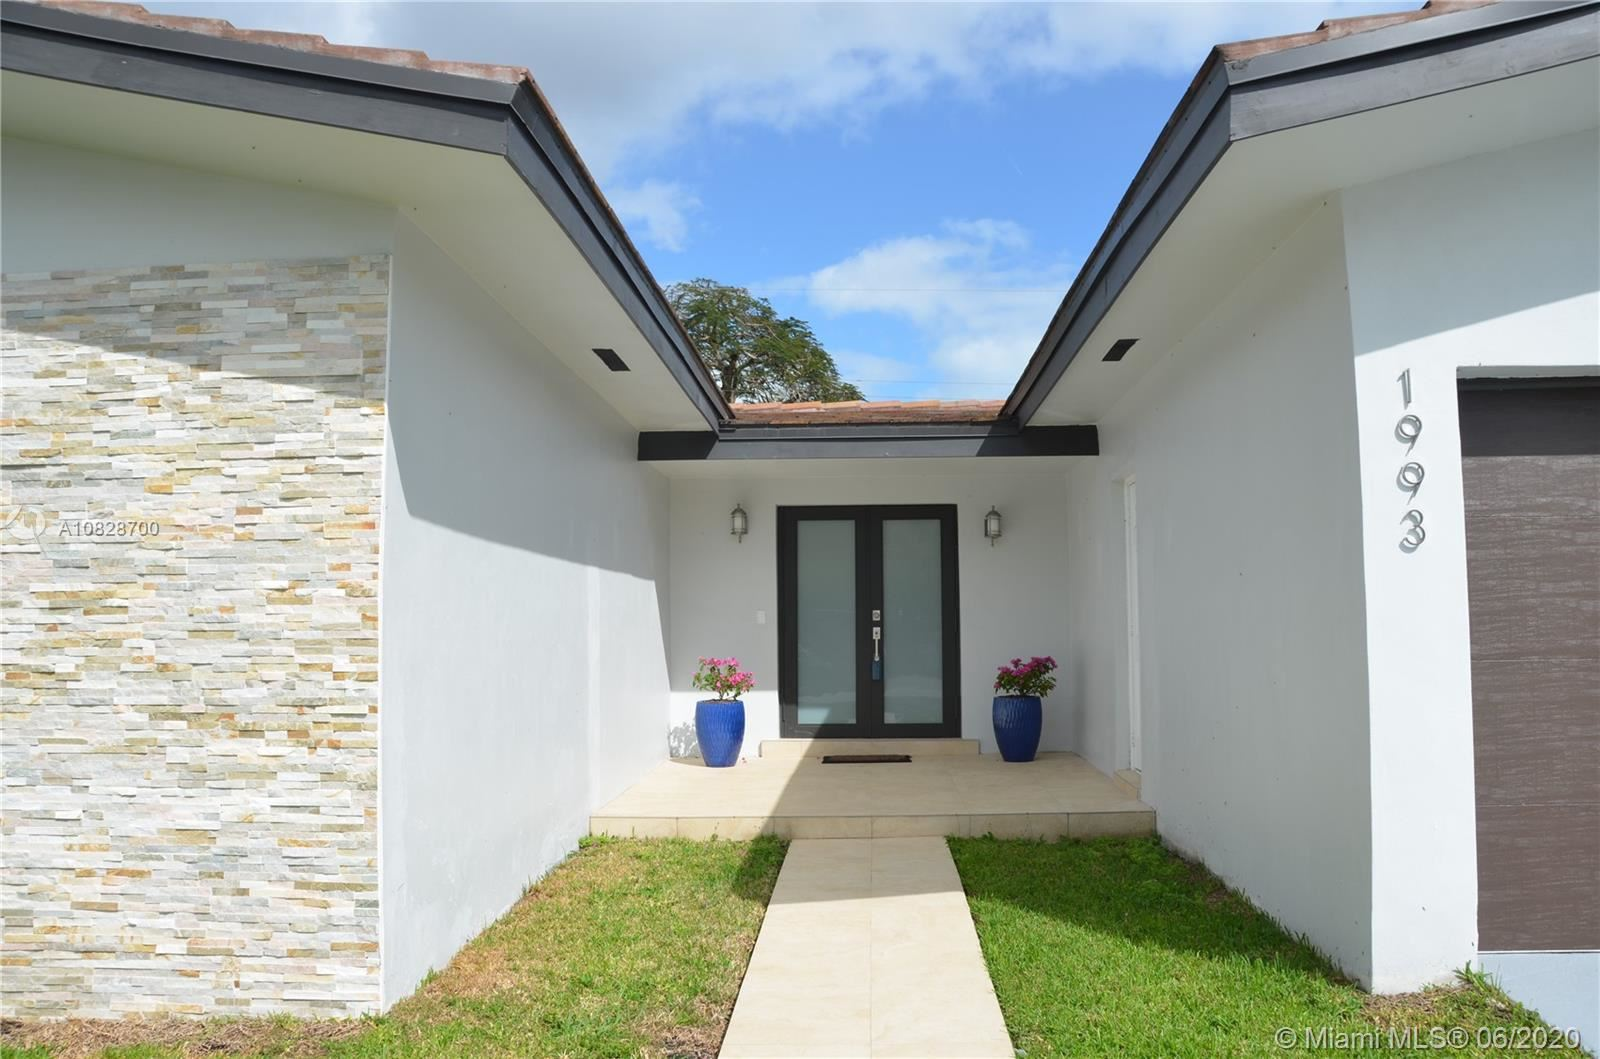 1993 SW 57th Ave, Coral Gables, FL 33155 - #: A10828700